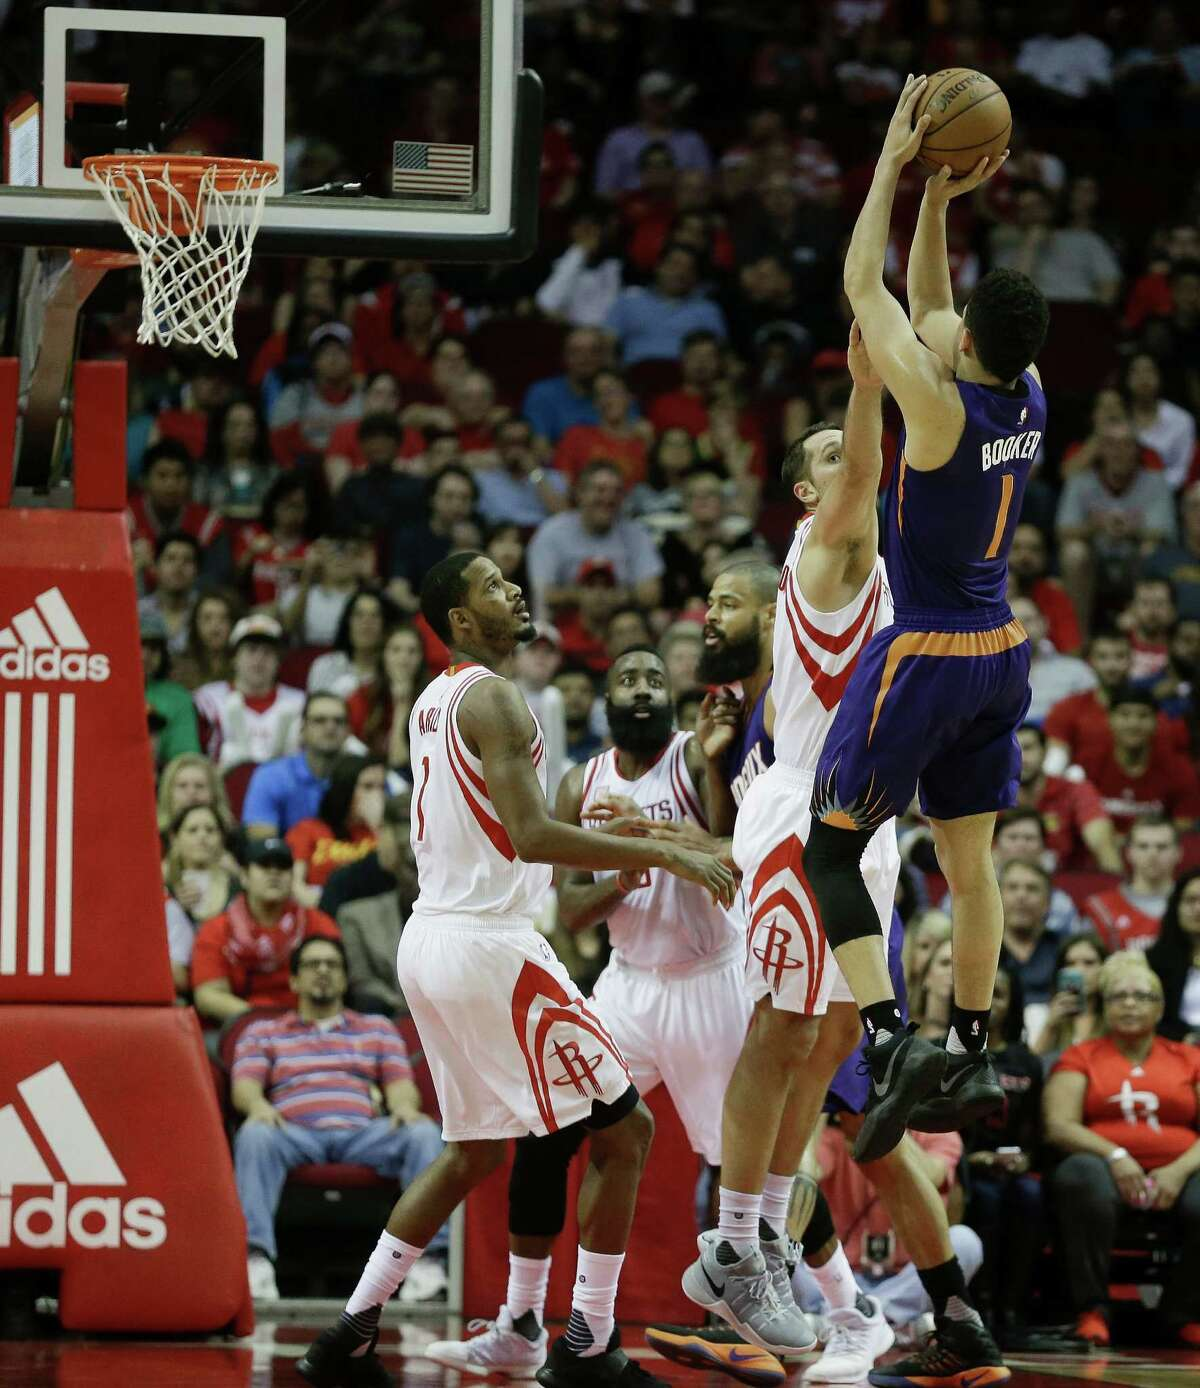 Phoenix Suns guard Devin Booker (1) shoots over Houston Rockets forward Ryan Anderson (3) as forward Trevor Ariza (1) watches in the first half of an NBA basketball game on Monday, Dec. 26, 2016 in Houston. (AP Photo/Bob Levey)